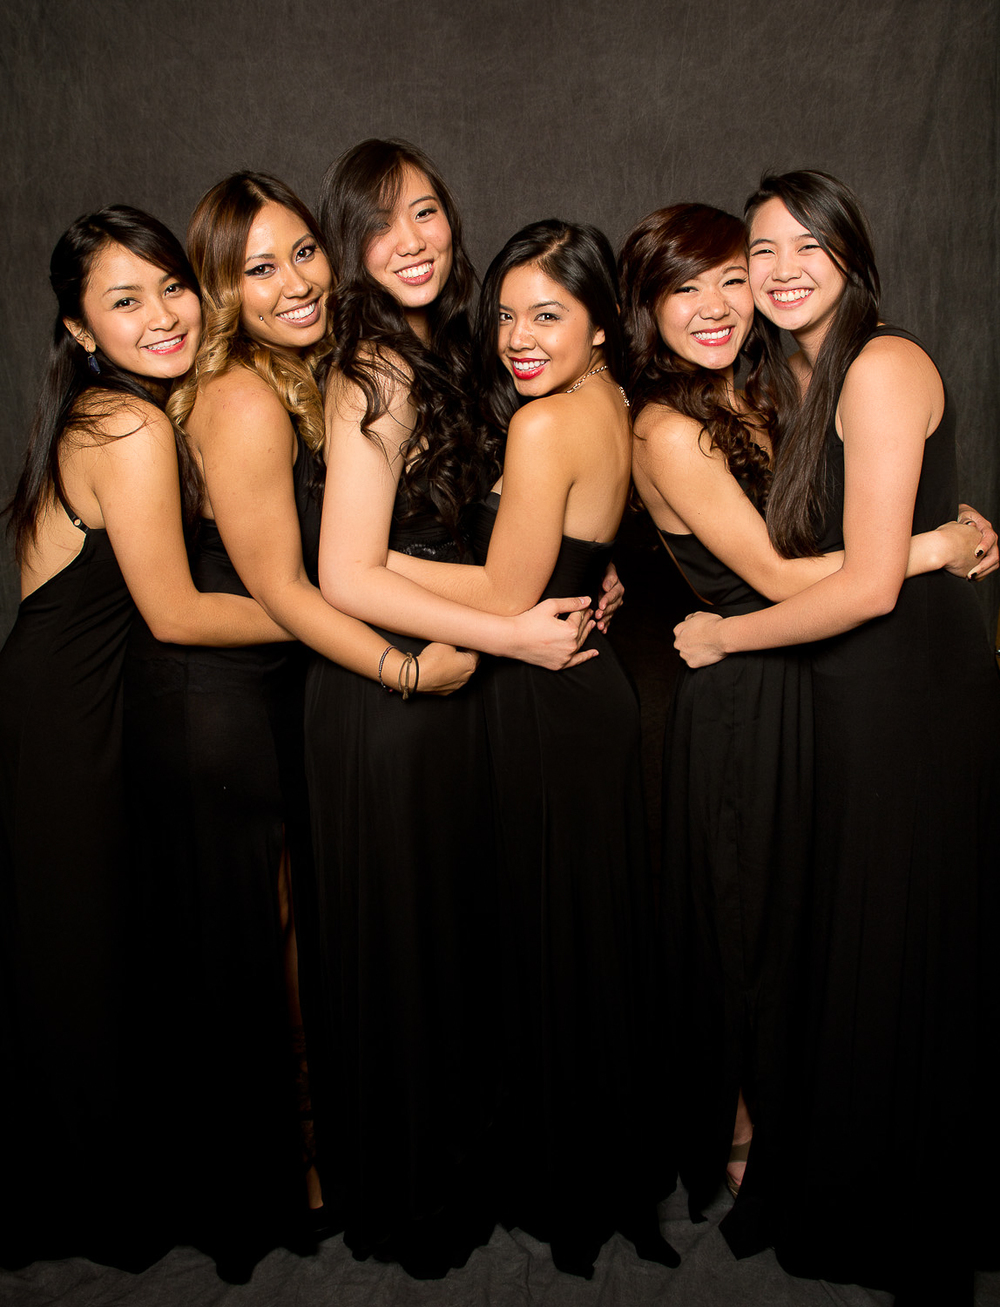 44-Bryan-Miraflor-Photography-Chi-Delta-Theta-UCLA-Zeta-Class-Formal-Presentation-20140125-0035.jpg